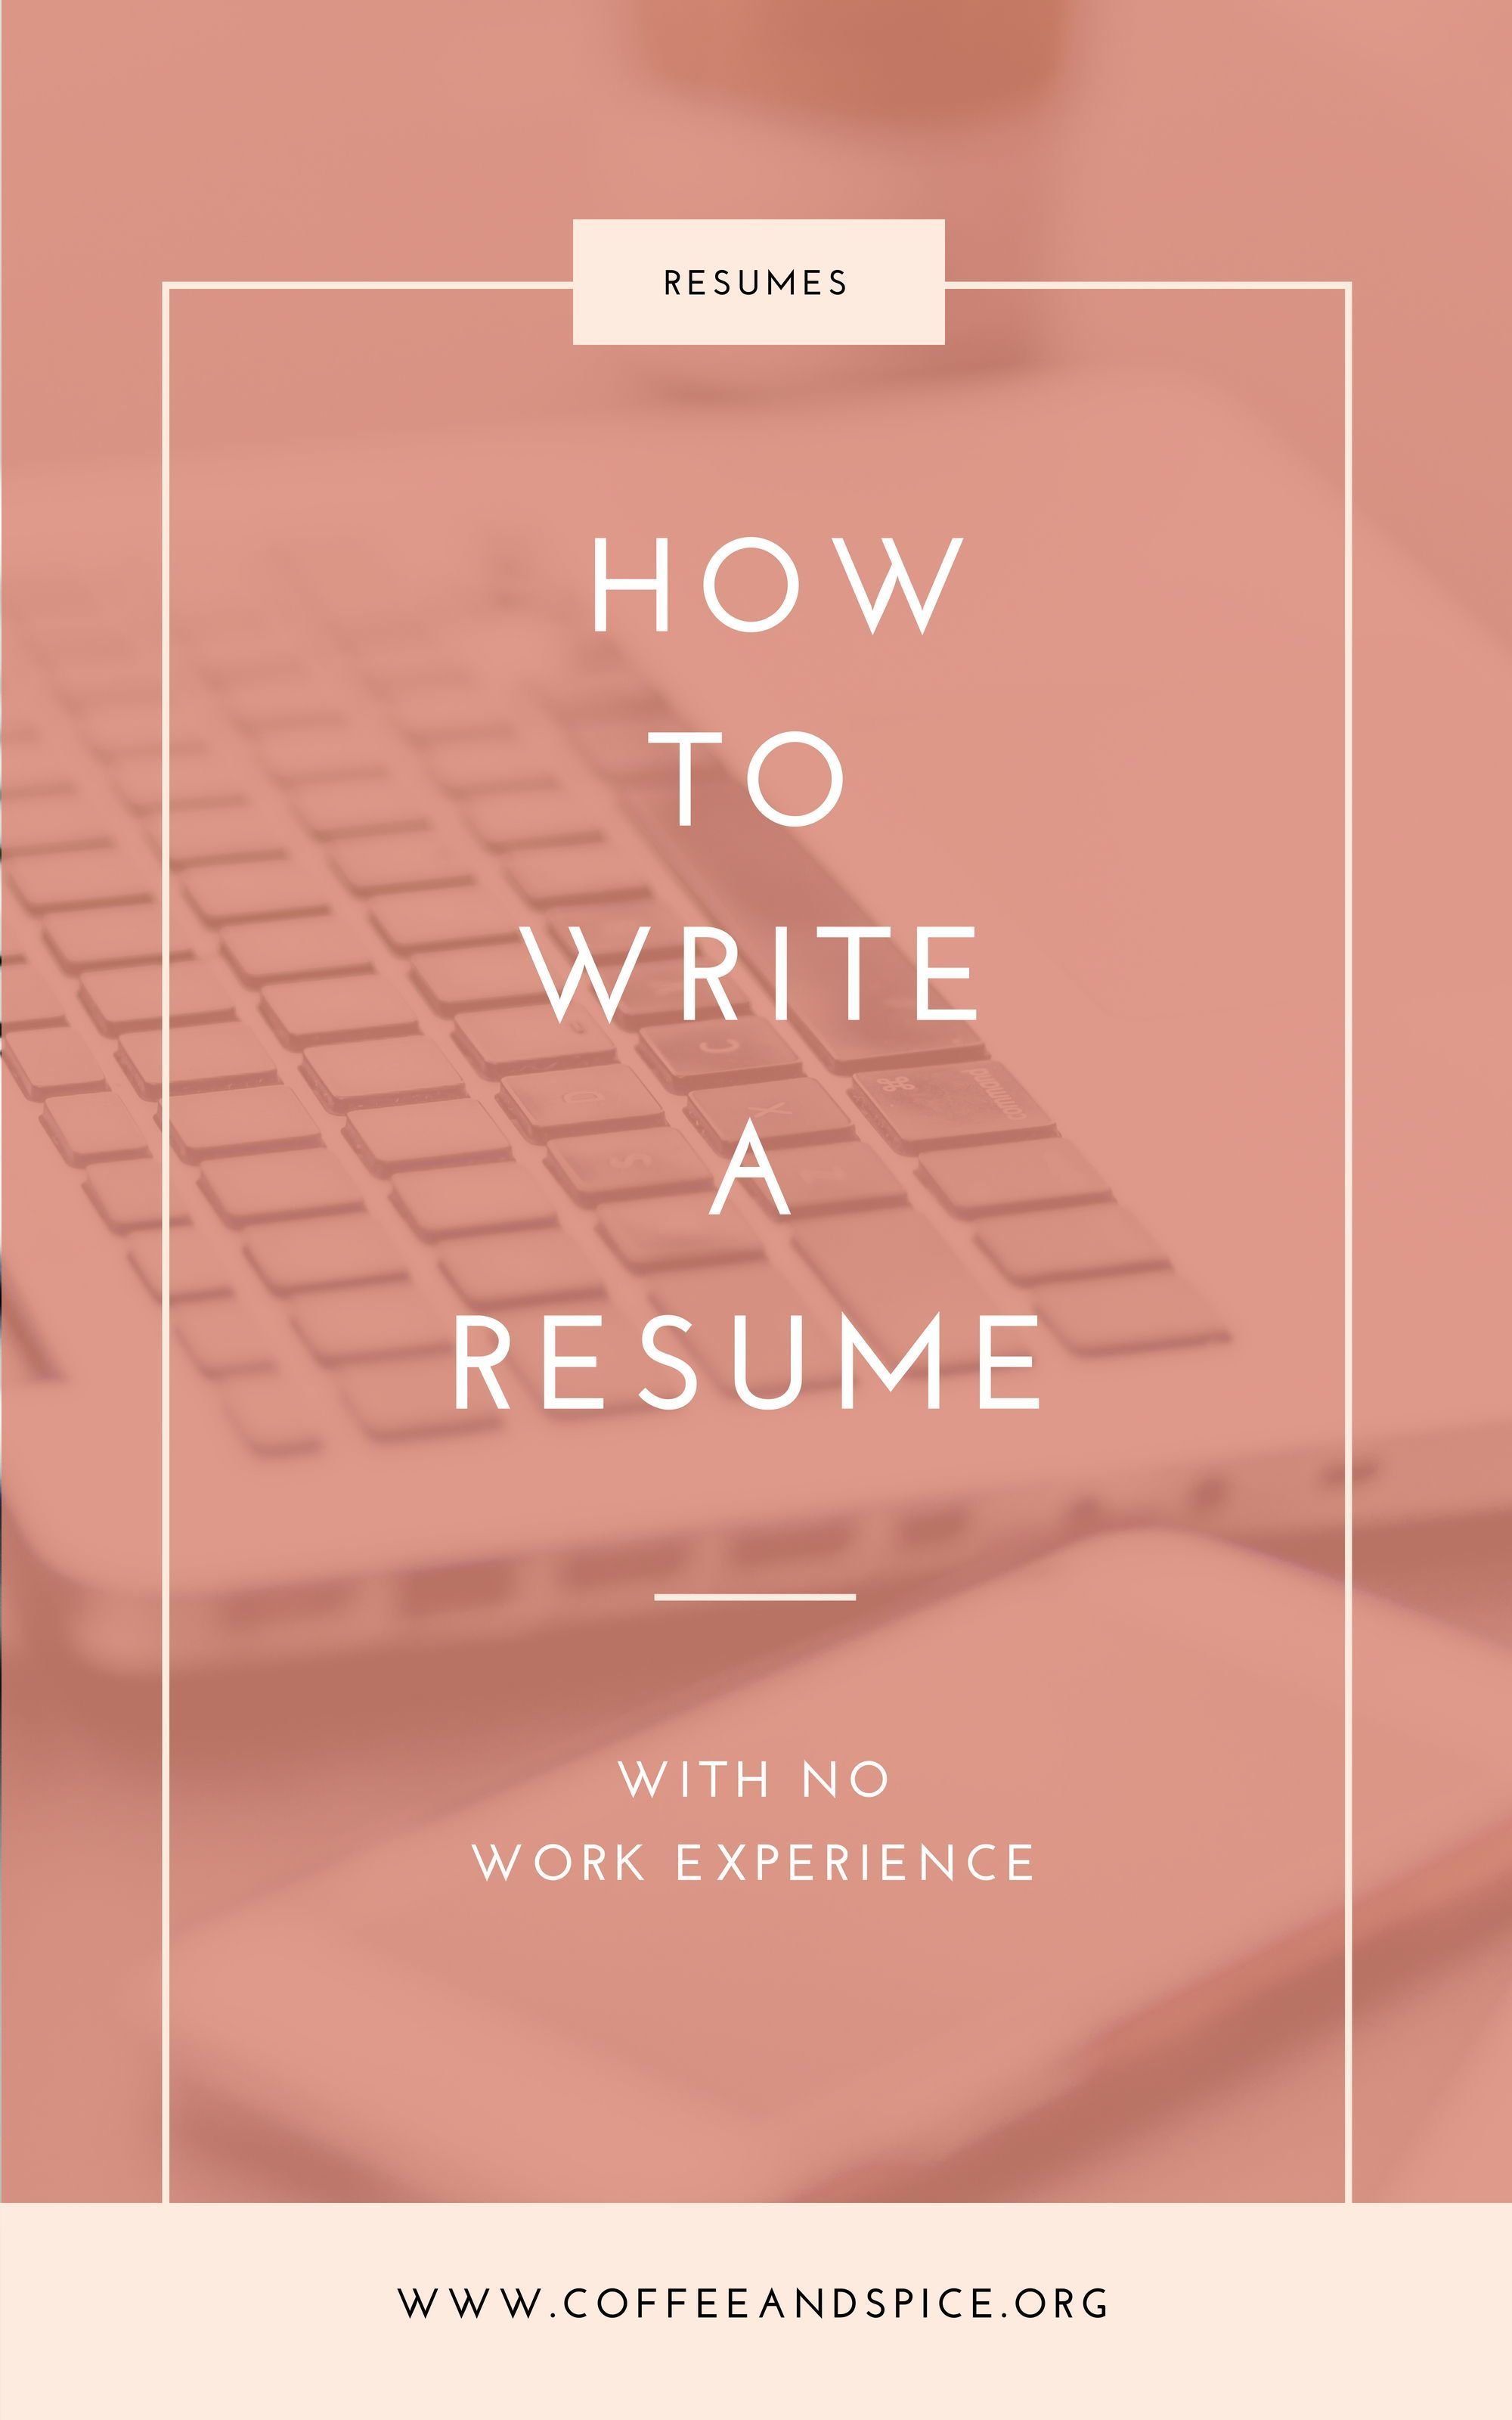 How To Write A Resume With No Work Experience Magnificent How To Write A Resume With No Work Experience  Resume Objective .